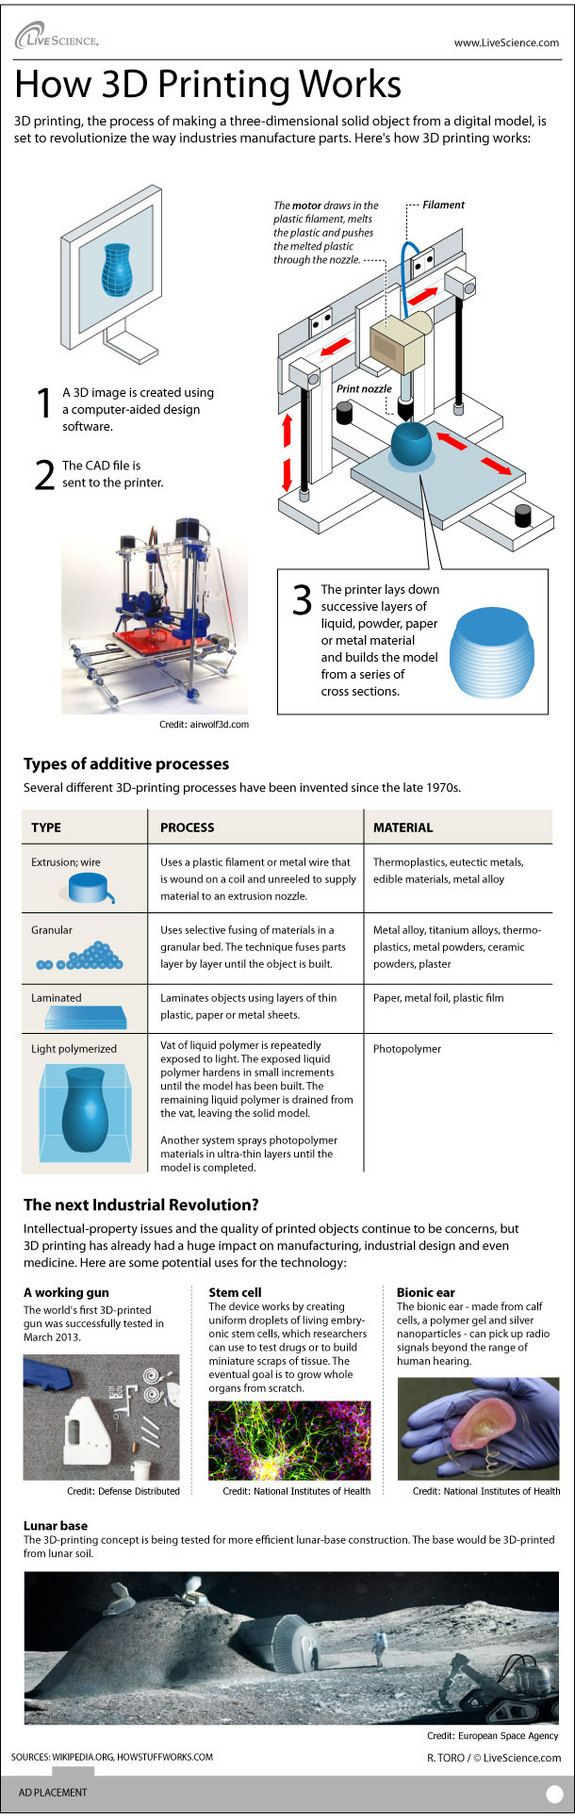 How 3D Printers Work (Infographic) Ross Toro, LiveScience ContributorDate: 18 June 2013